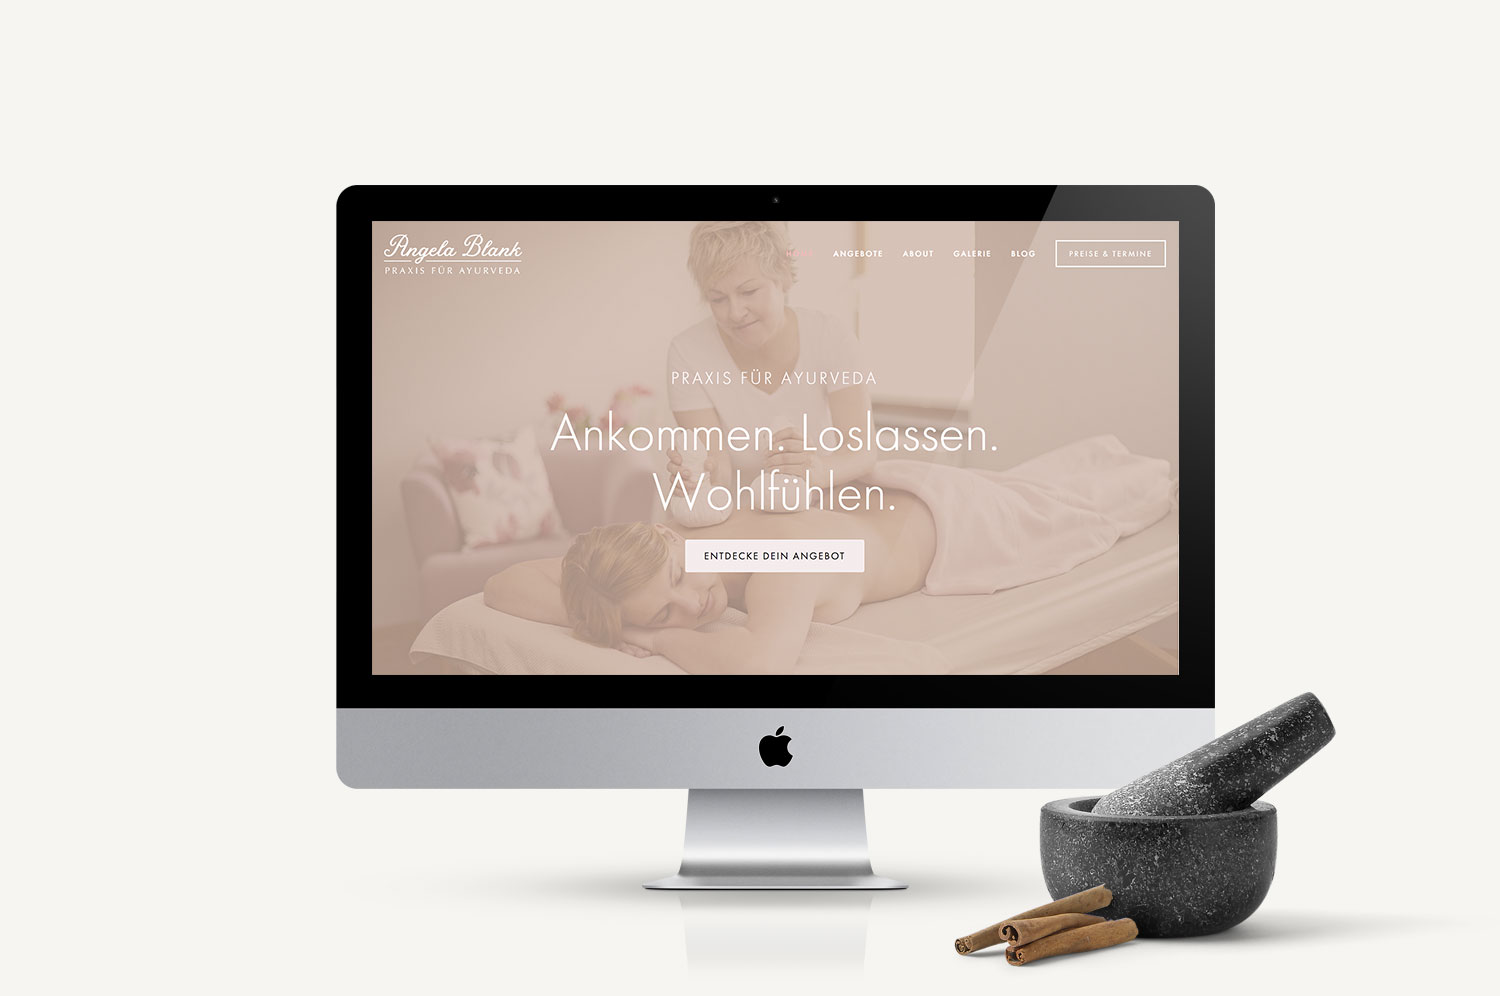 Squarespace Webdesign, Text, Branding by www.eimotiondesign.com